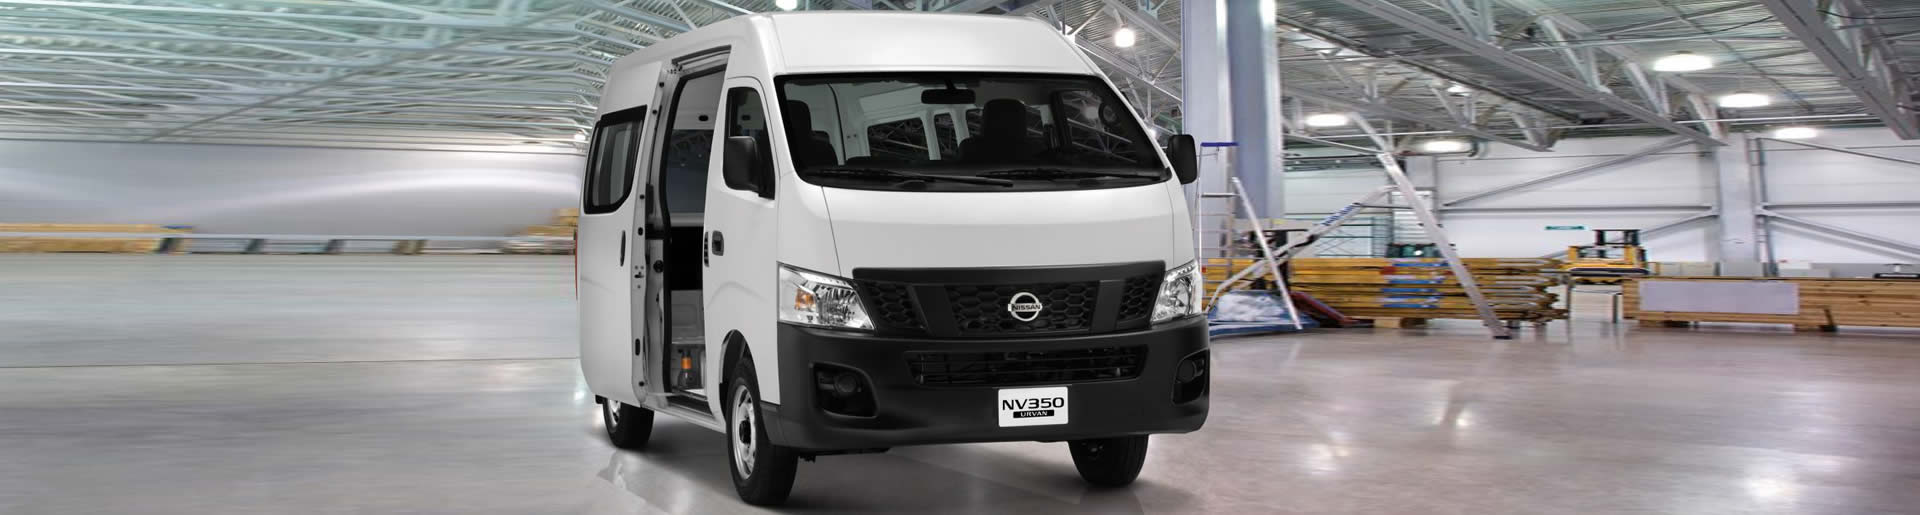 nissan nv350 Chile